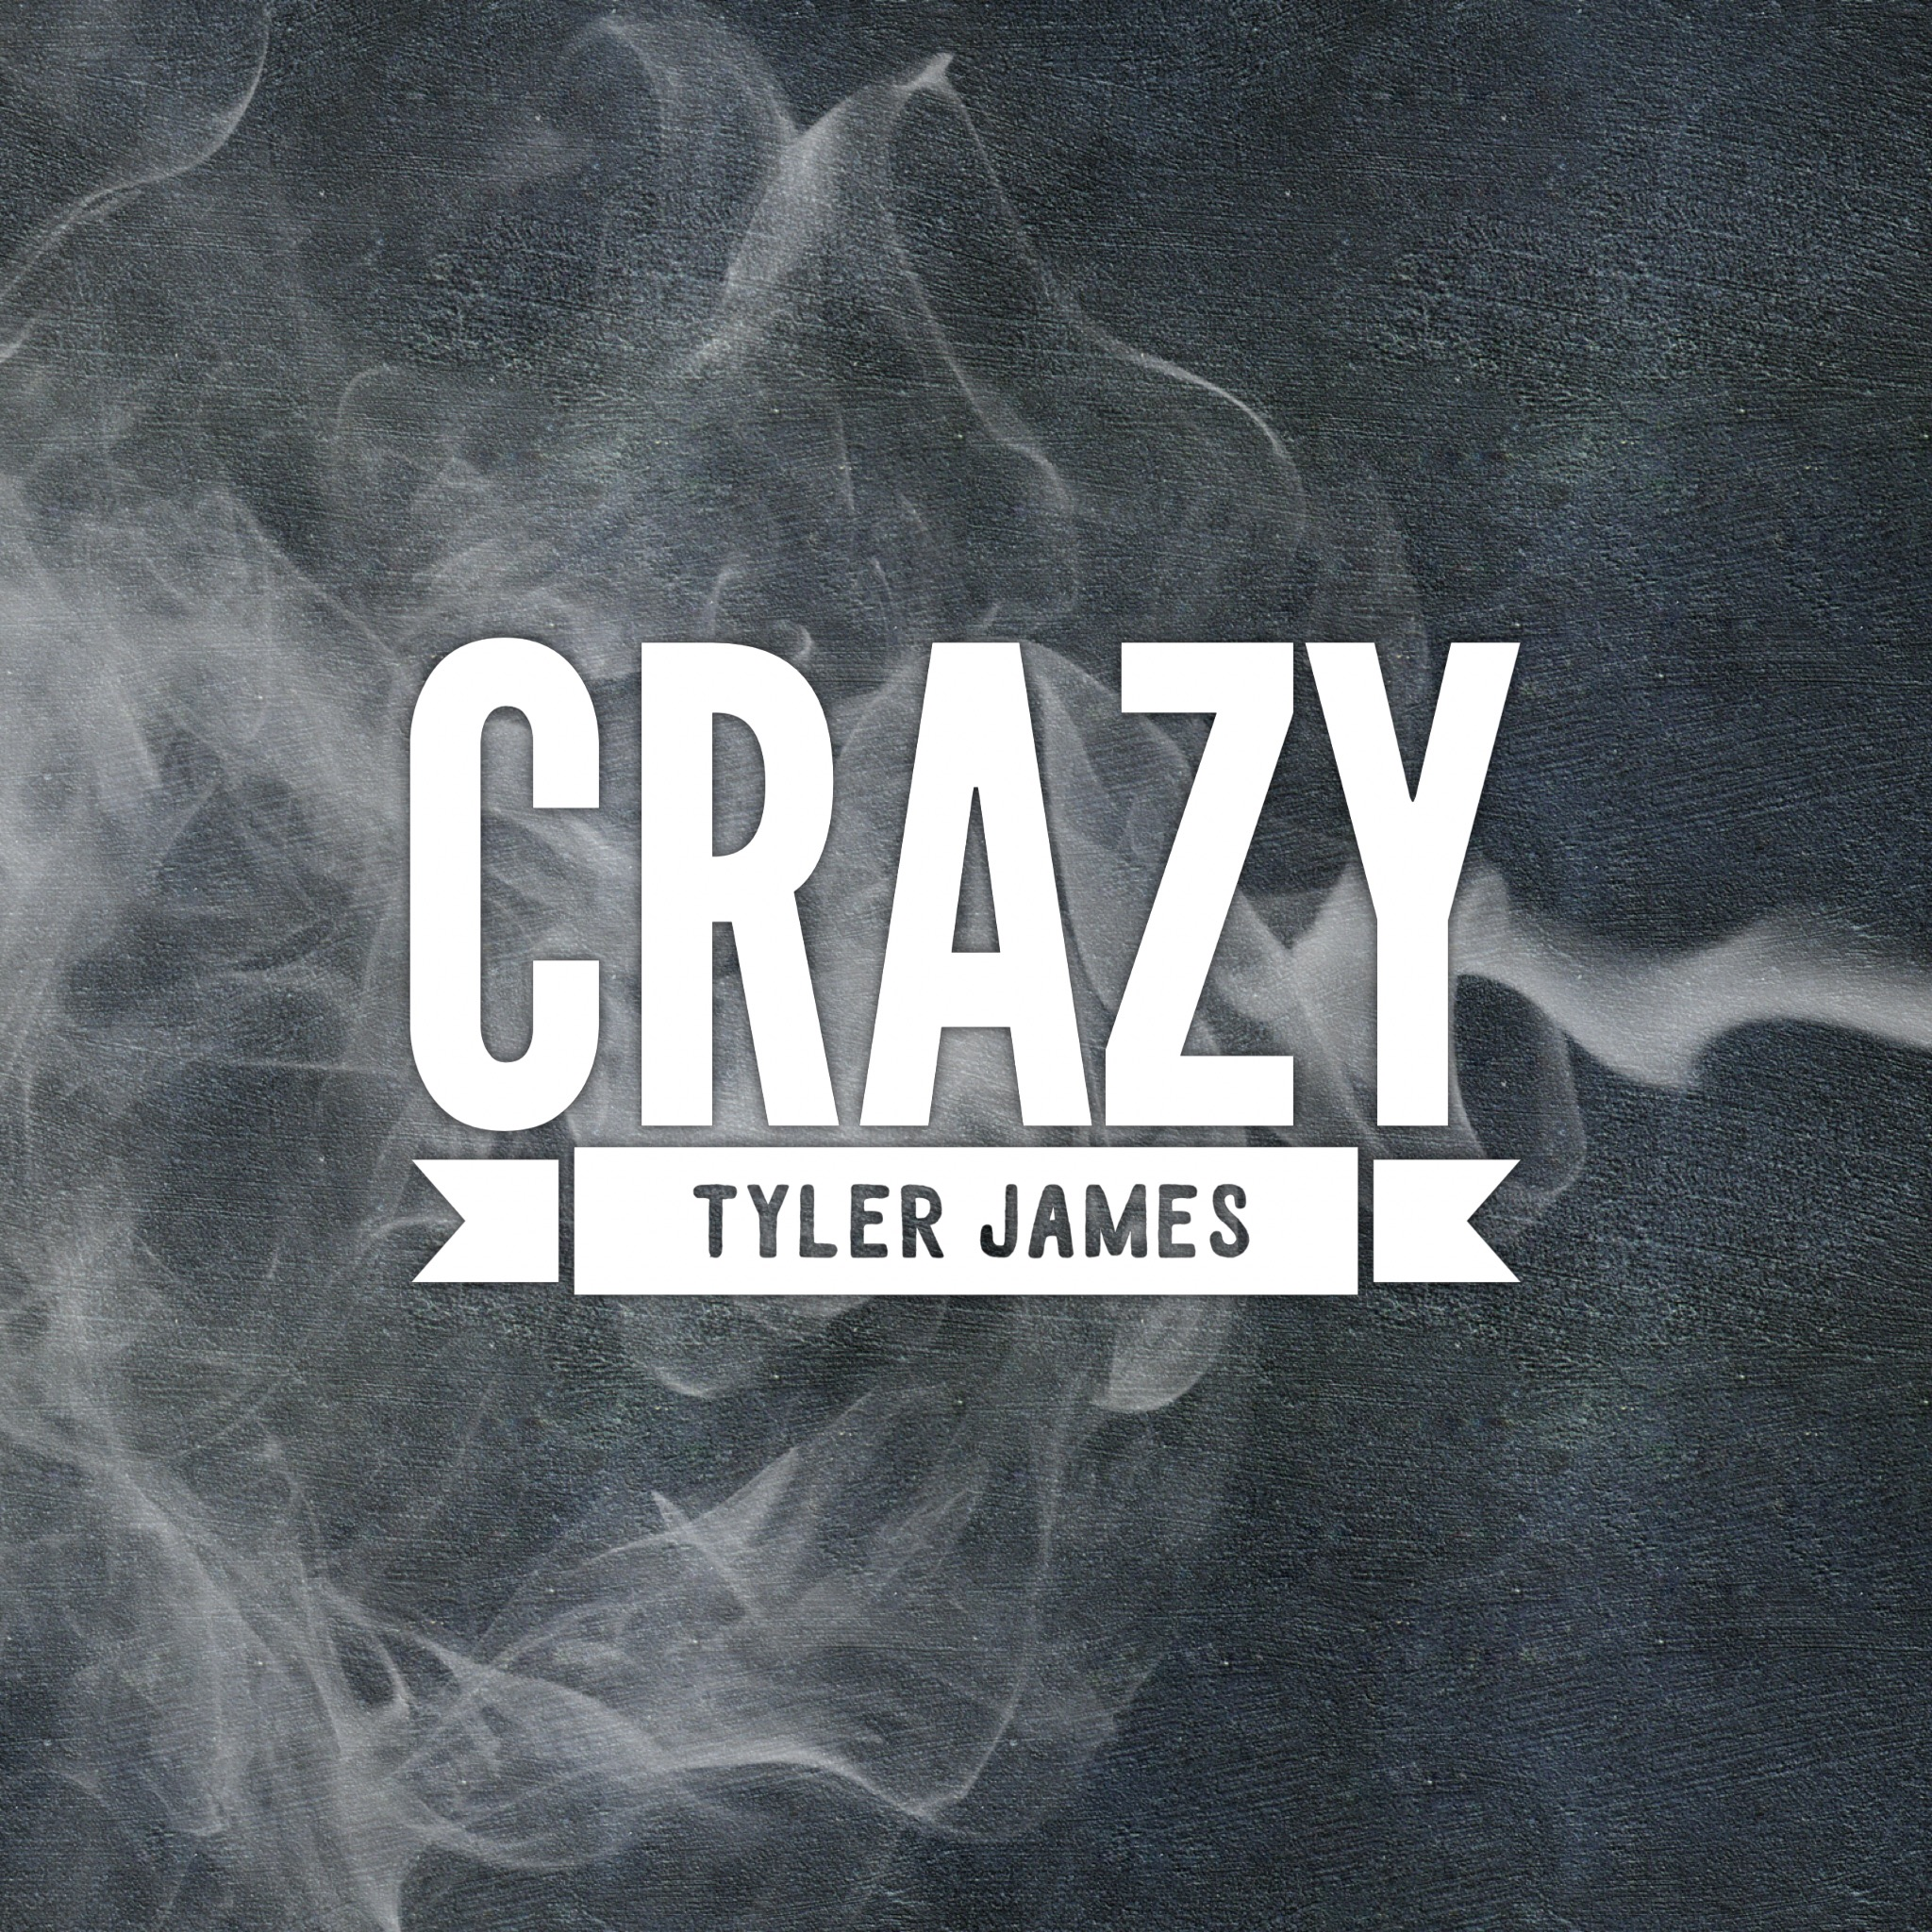 Tyler James - Crazy